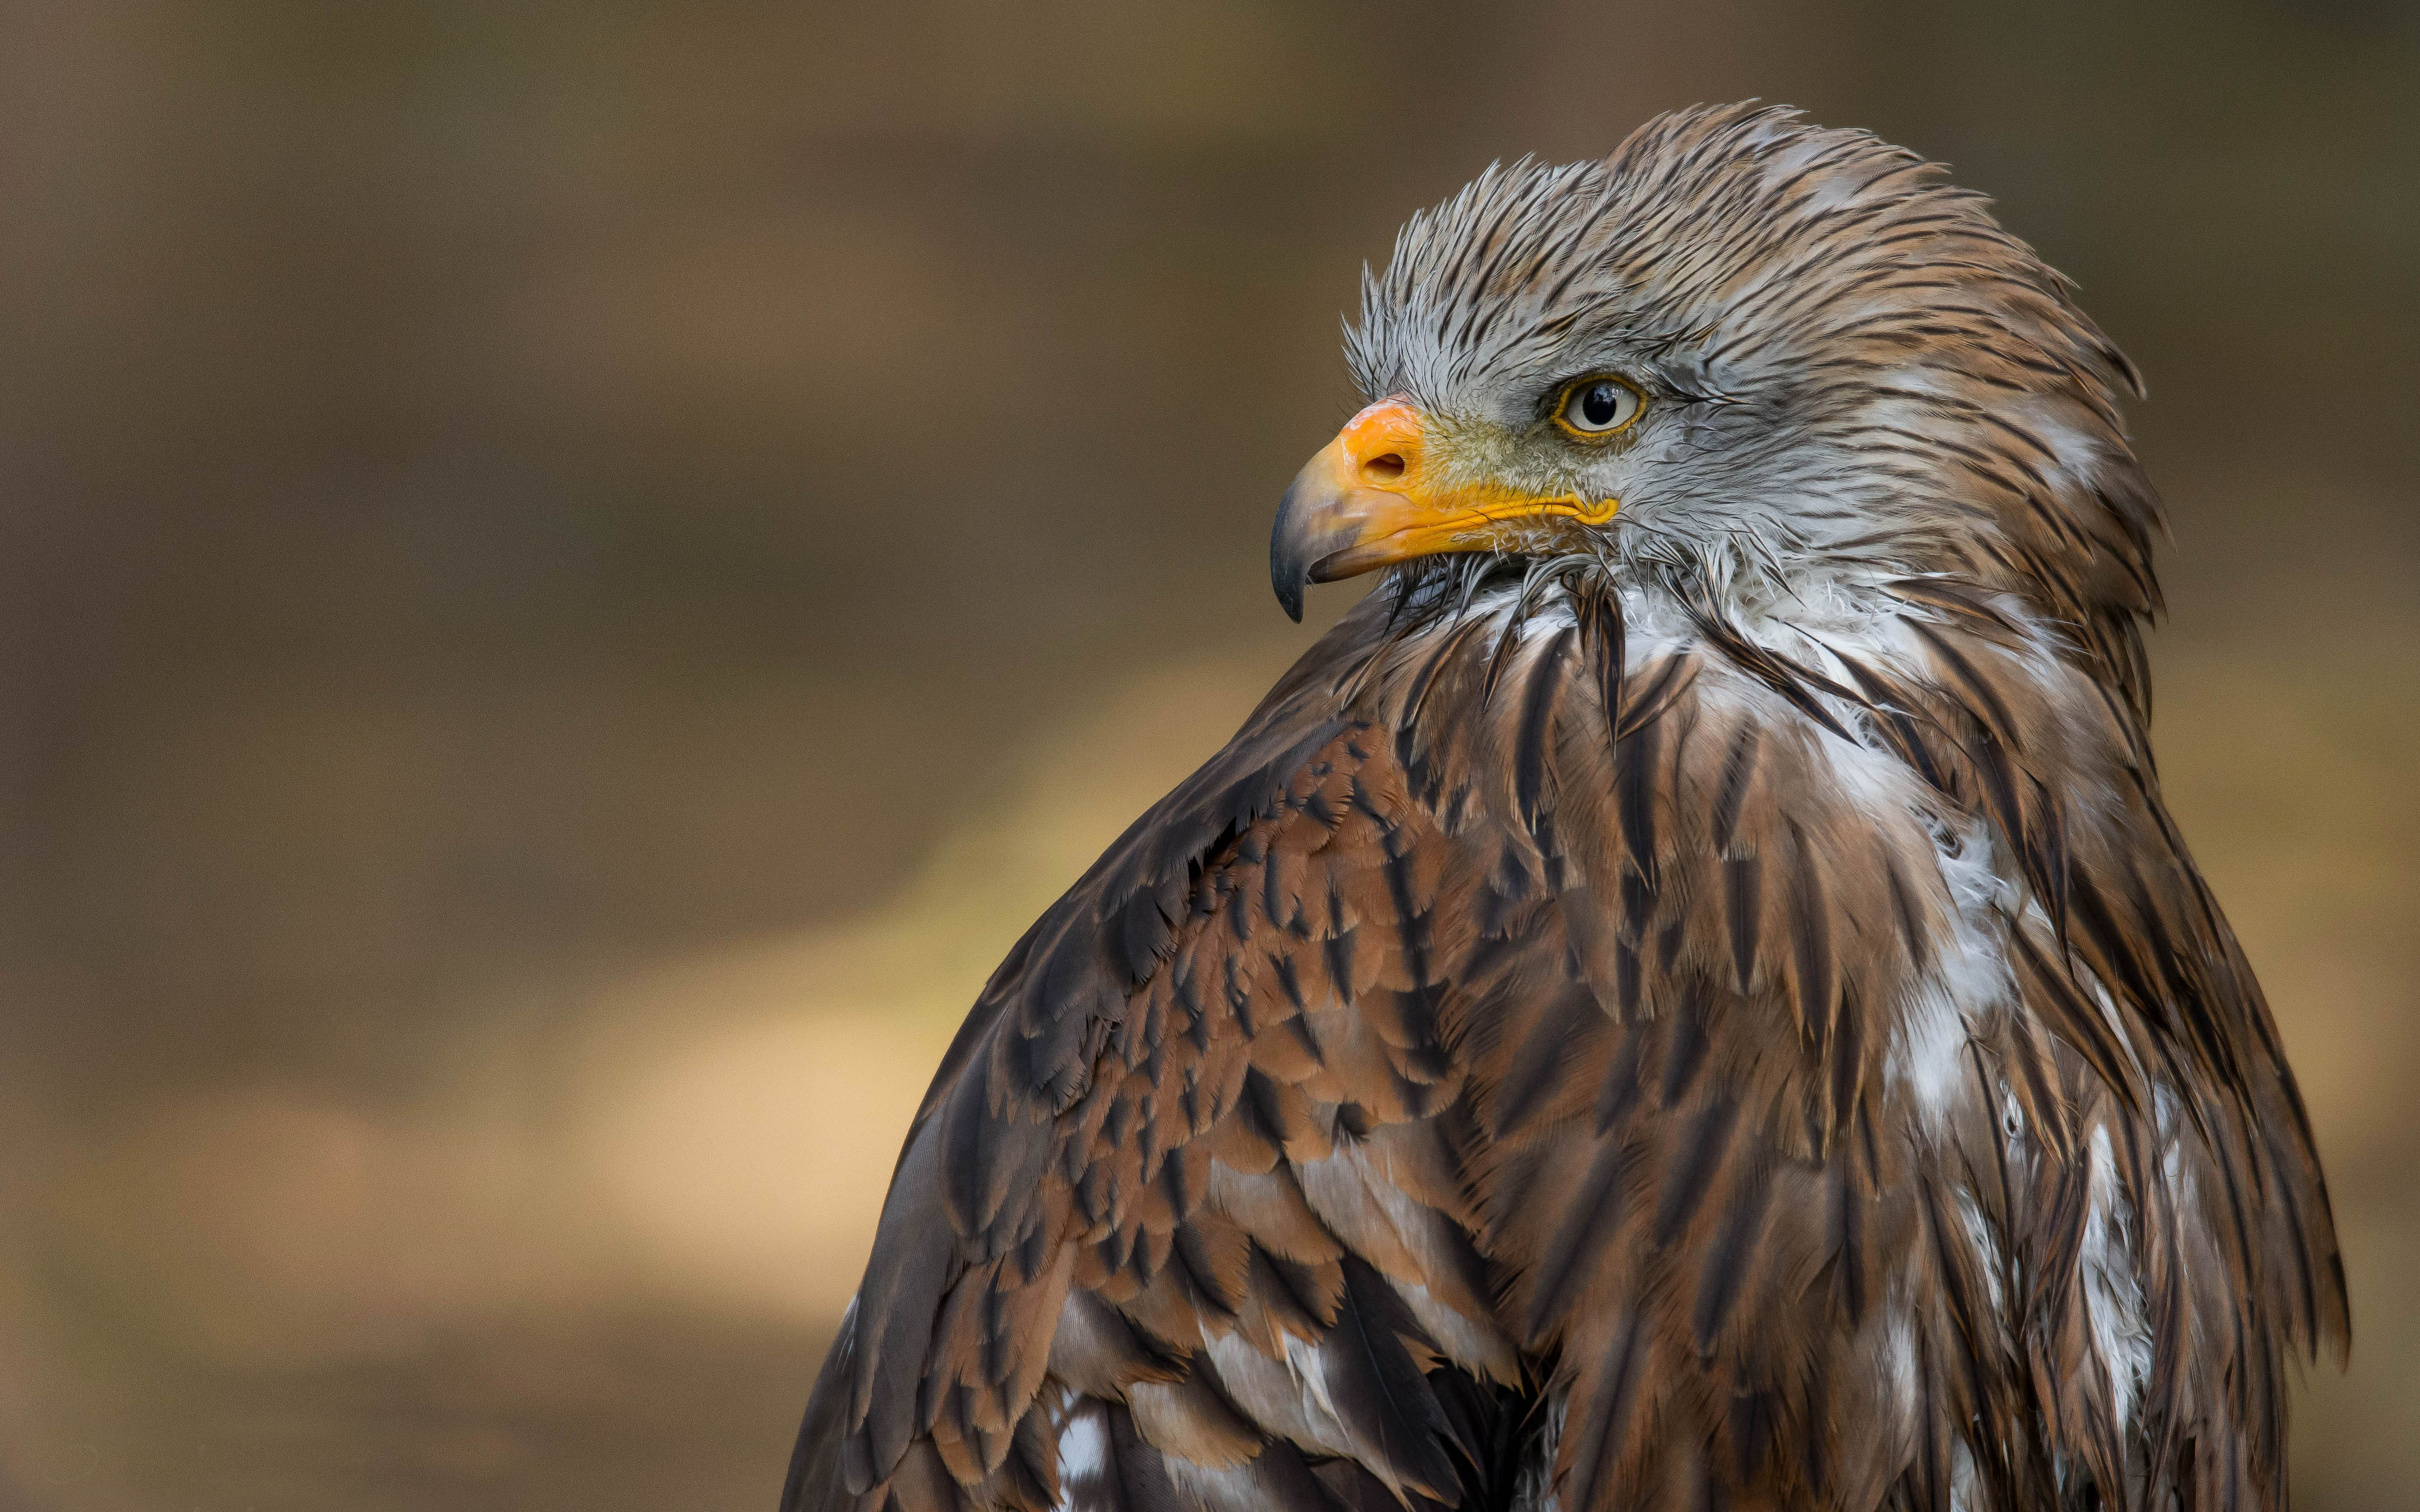 Red Dragon Milvus Milvus Also Red Hawk Kites Large Bird Of Prey Of The Family Accipitridae